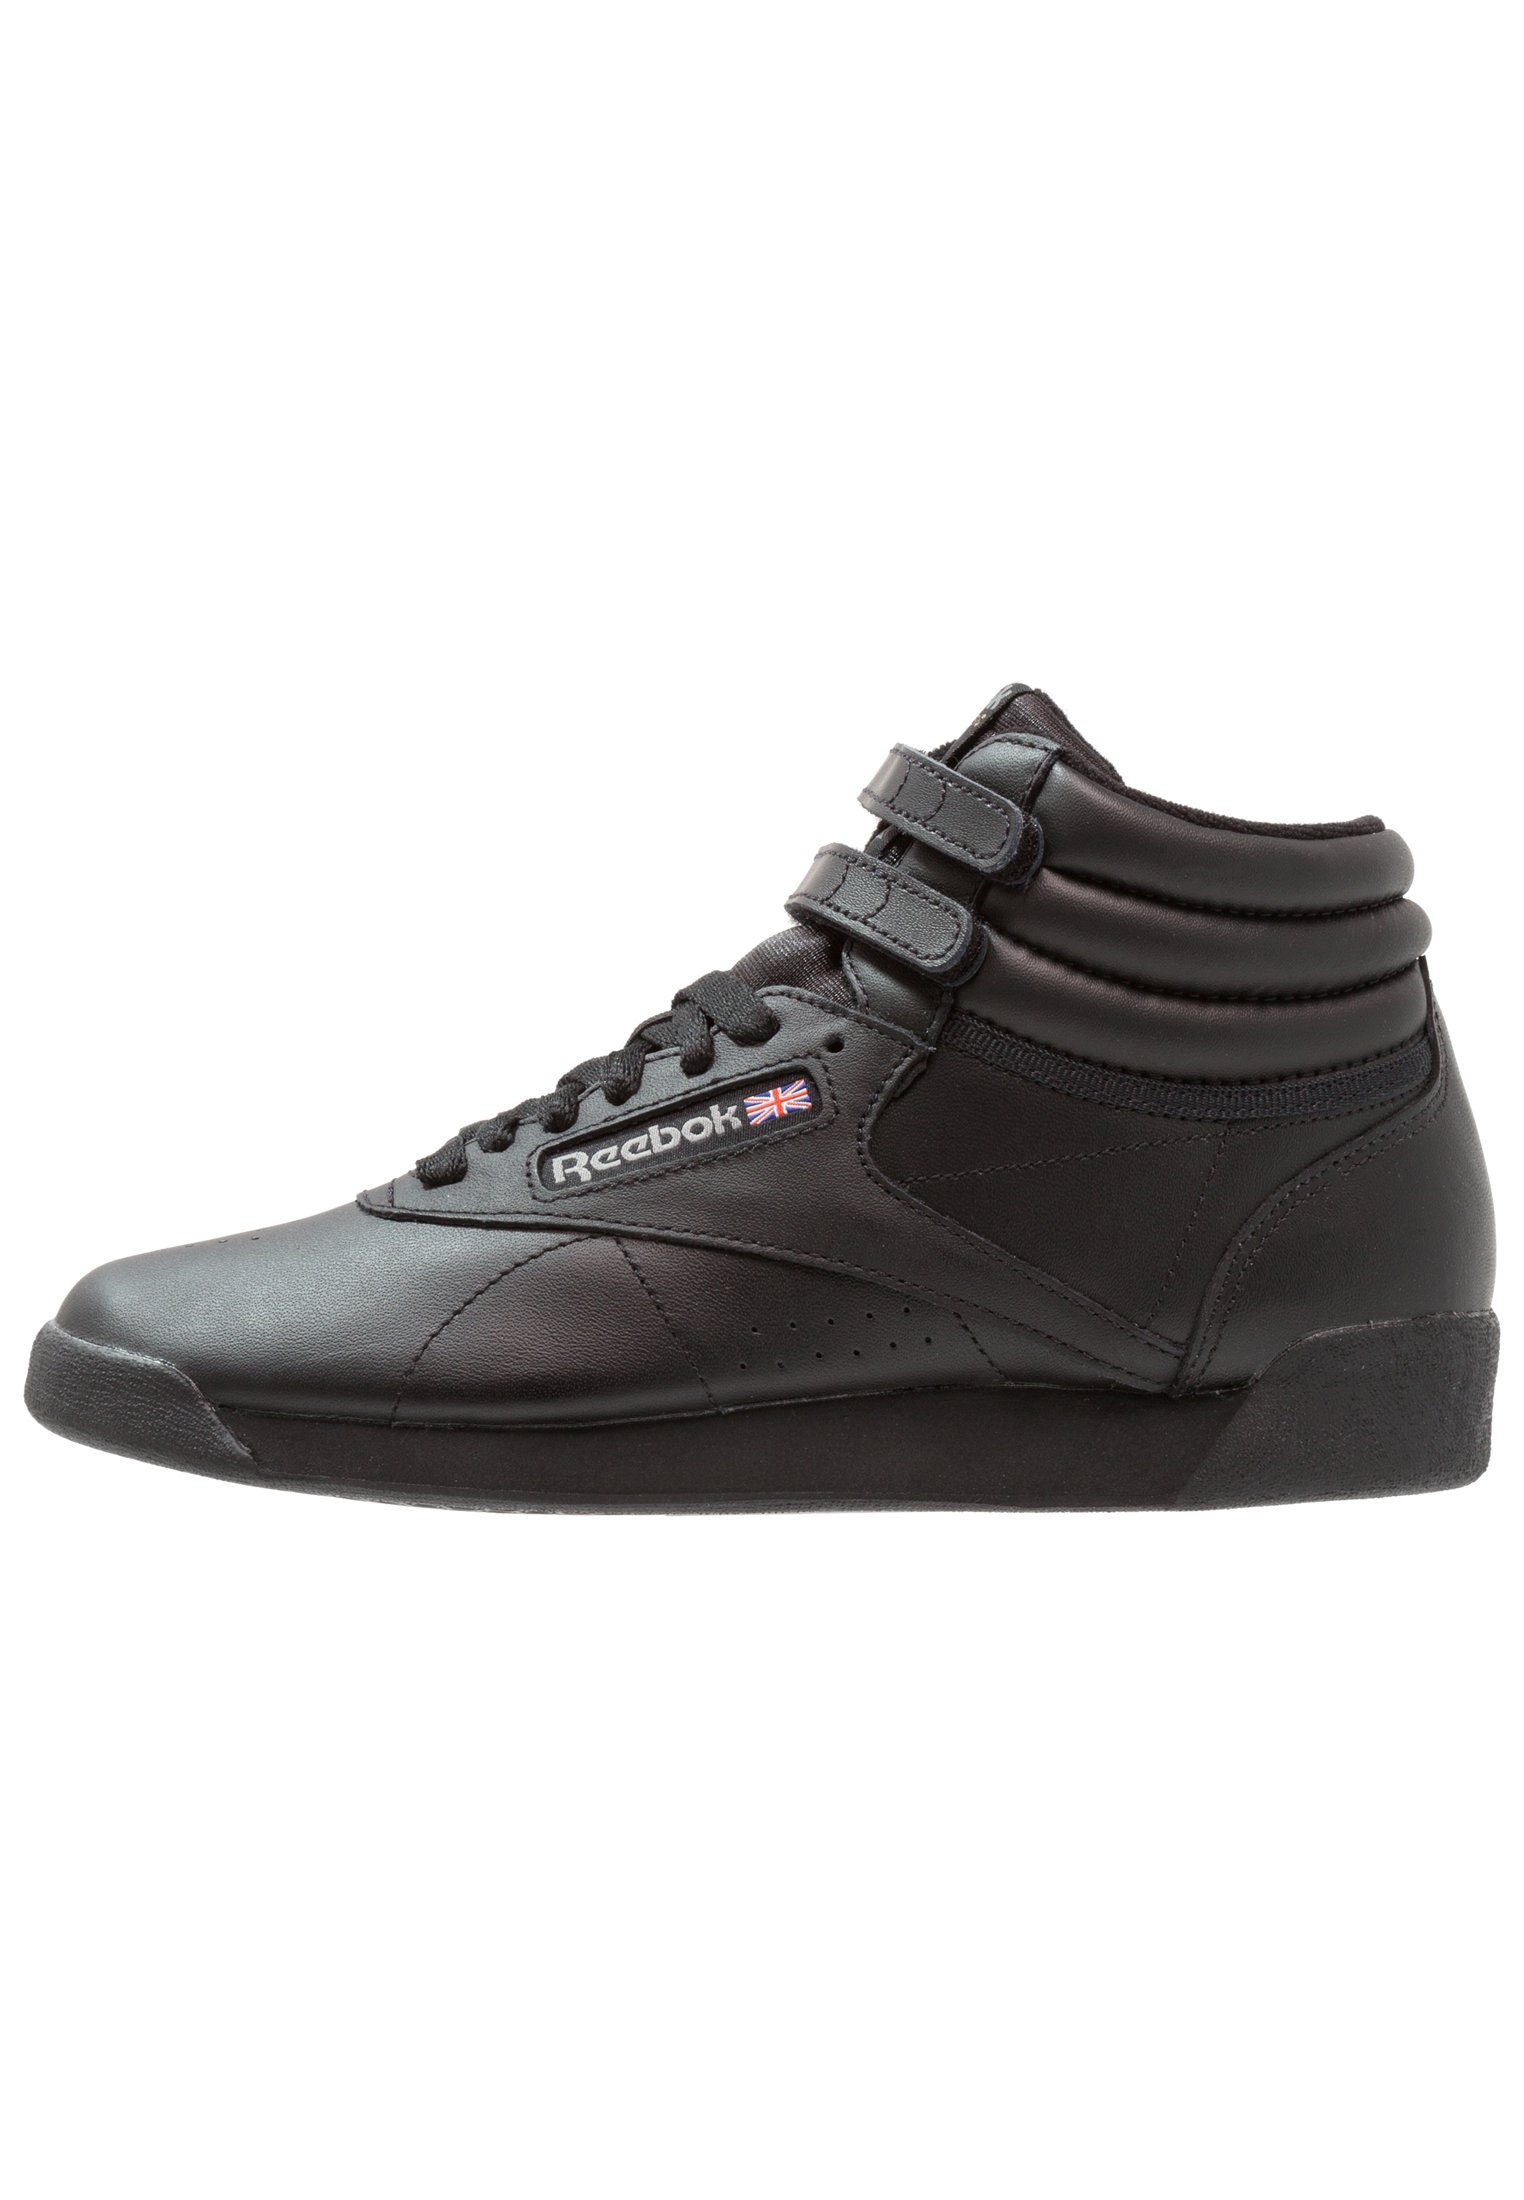 FREESTYLE HI LIGHT SOFT LEATHER SHOES Sneakers alte black